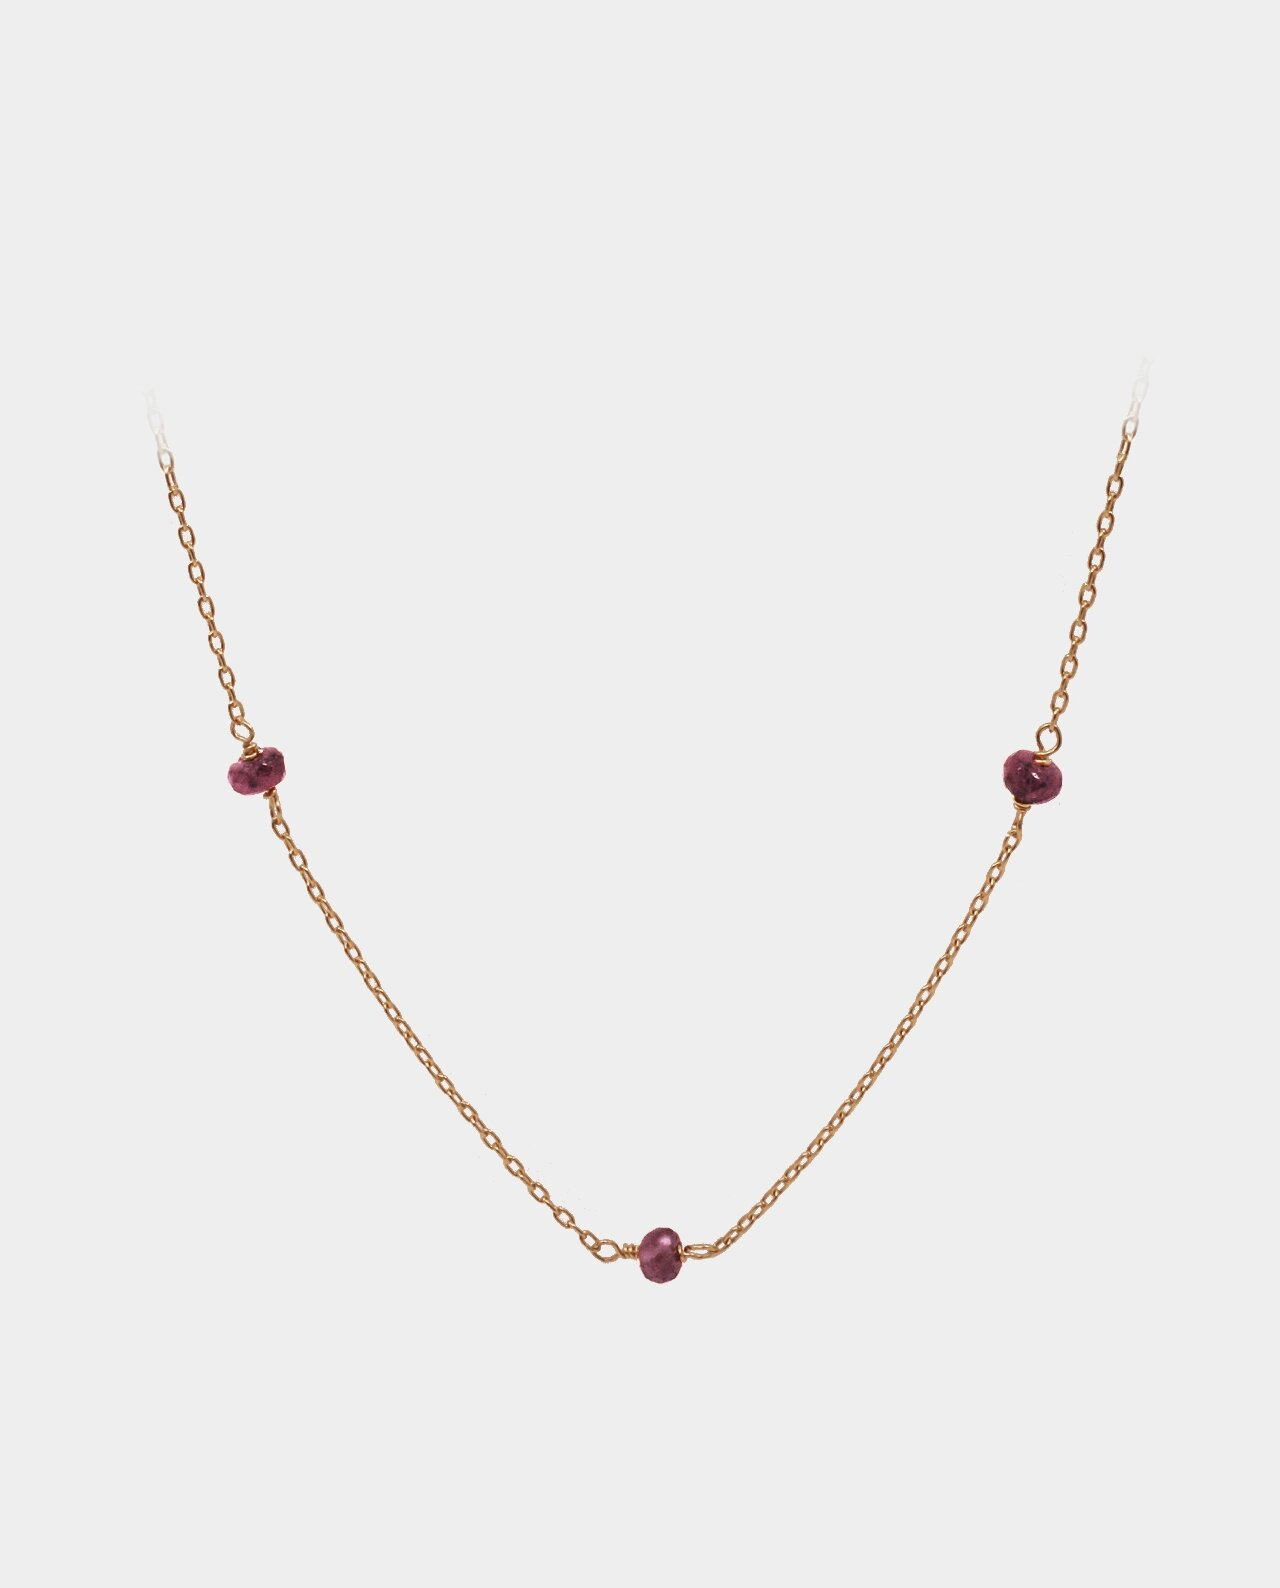 Necklace with pink sapphires in vintage design bevelled according to the original method